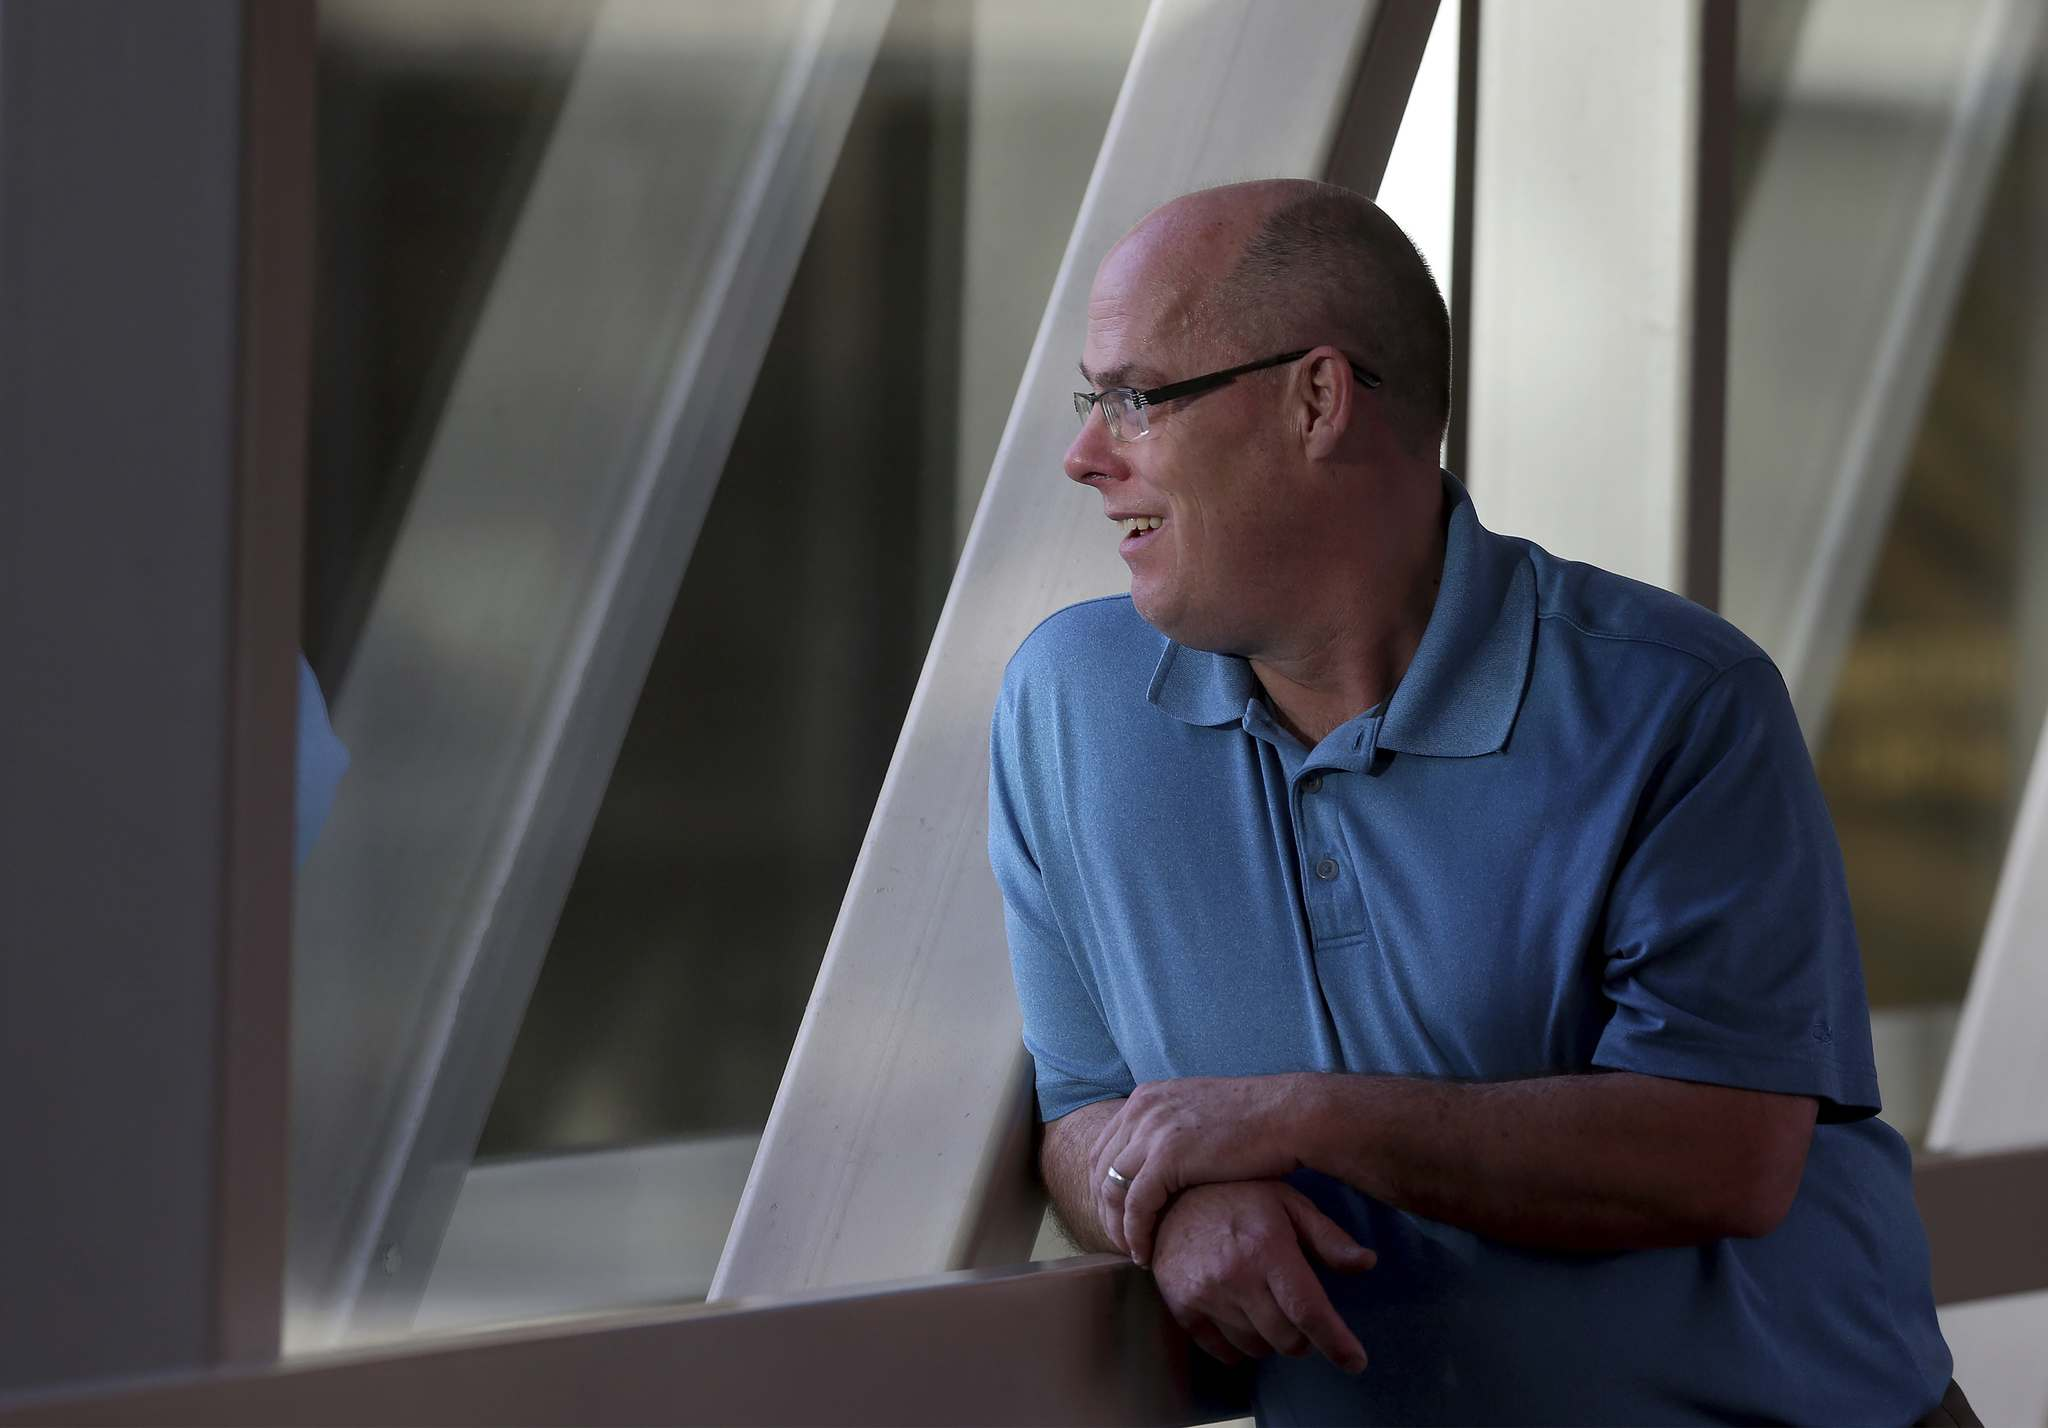 David Kron says while the skywalk isn't perfect, it fills a need for many. (Shannon VanRaes / Winnipeg Free Press)